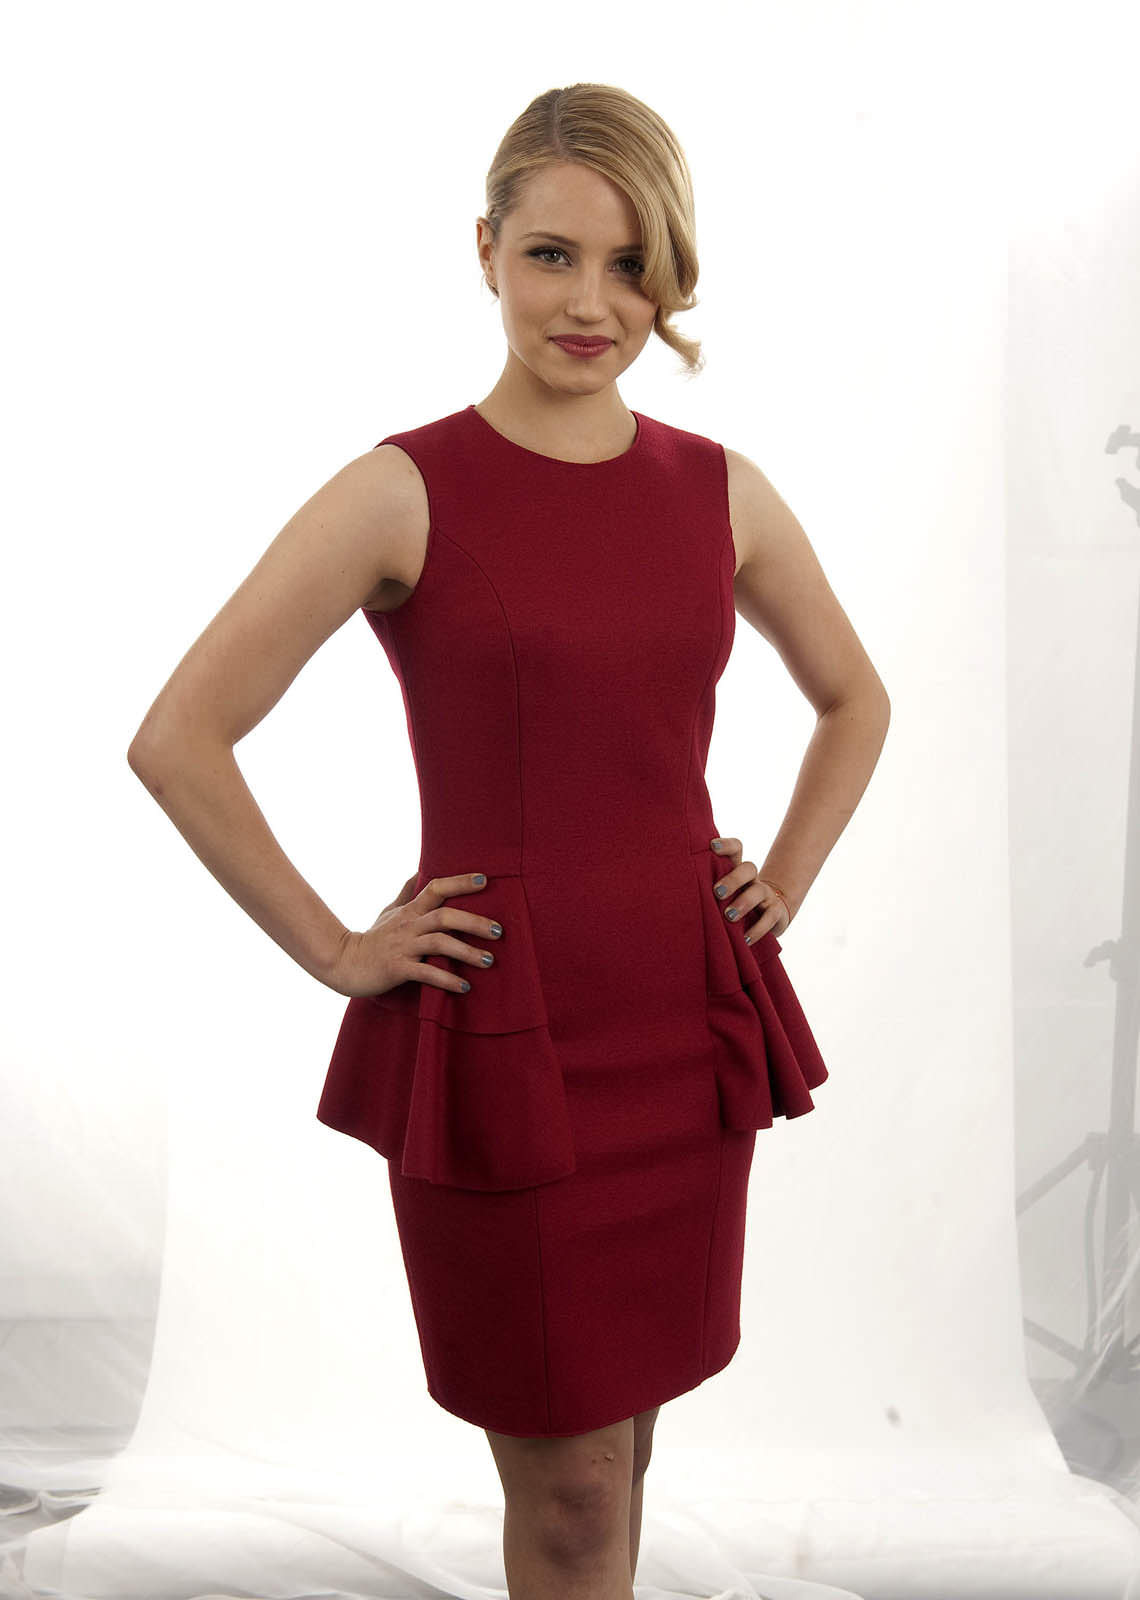 dianna-agron-photo-gallery-12